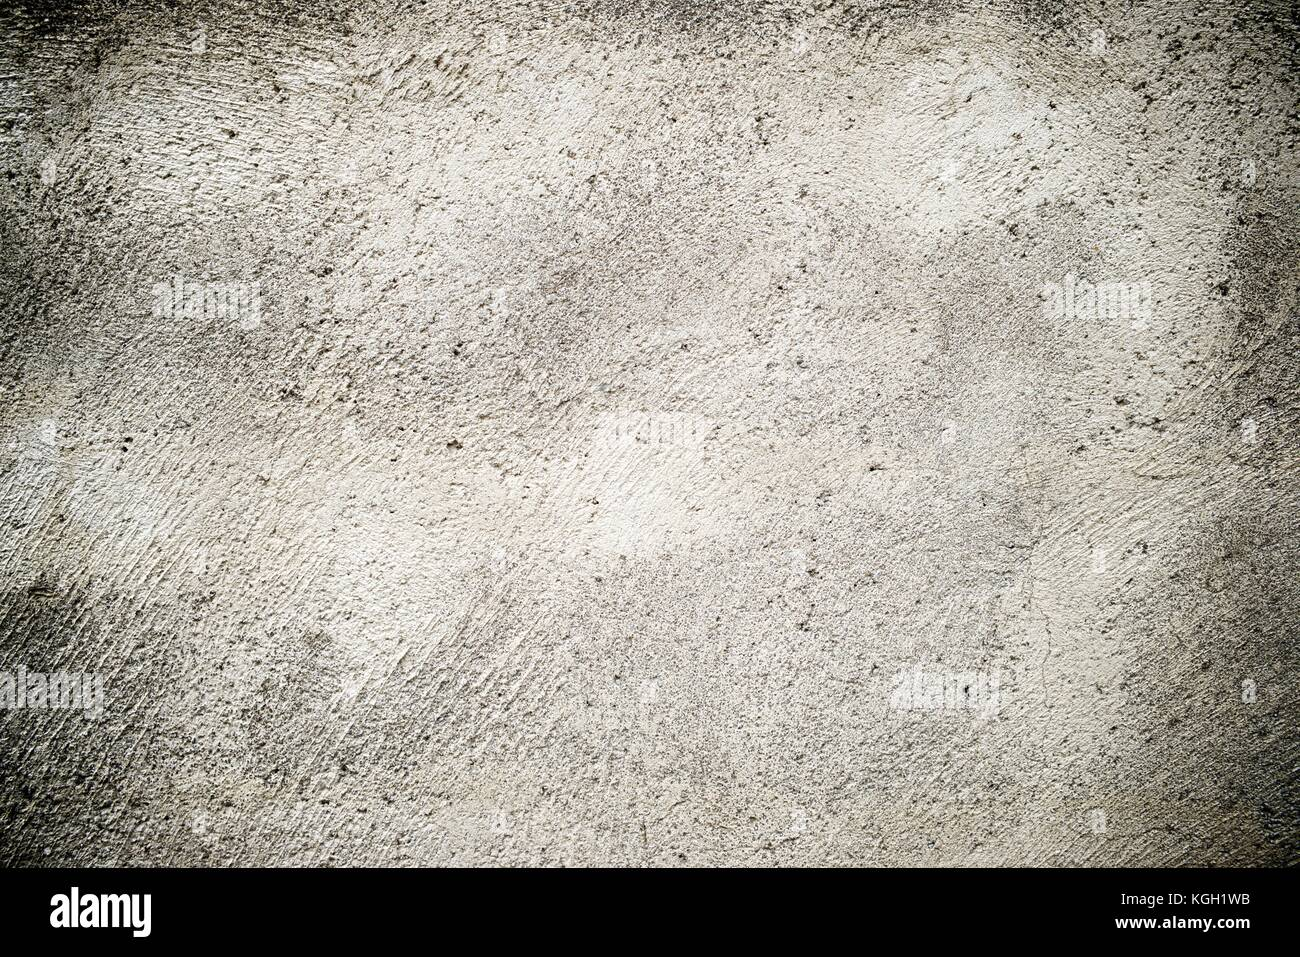 Dirt Smudged Stock Photos Amp Dirt Smudged Stock Images Alamy